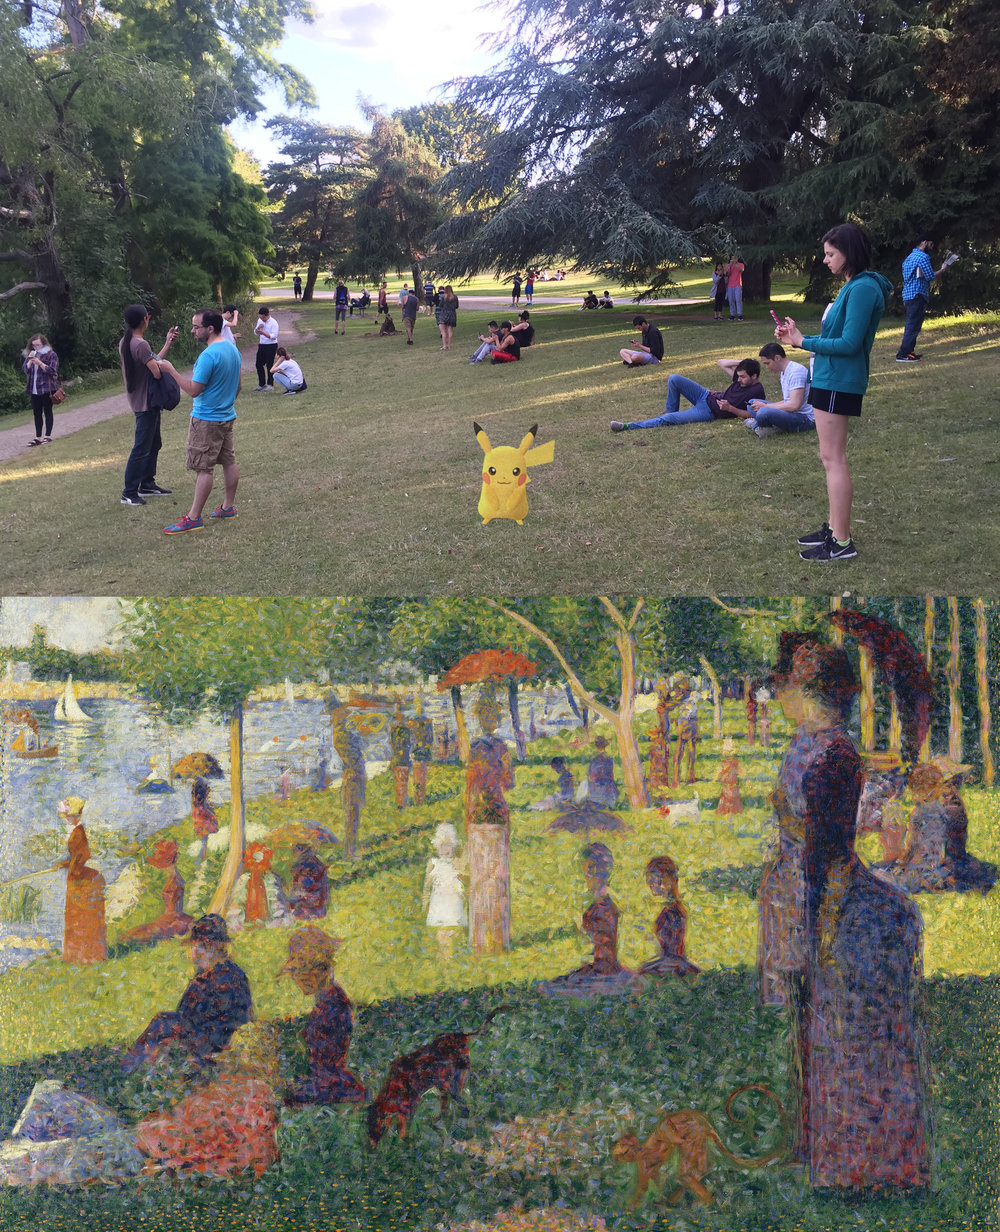 Pokémon GO players gather at a Pok  éspot in   Seattle's Green Lake Park. Reminds me of a modern day version of  Seurat's Sunday Afternoon on the Island of La Grande Jatte .